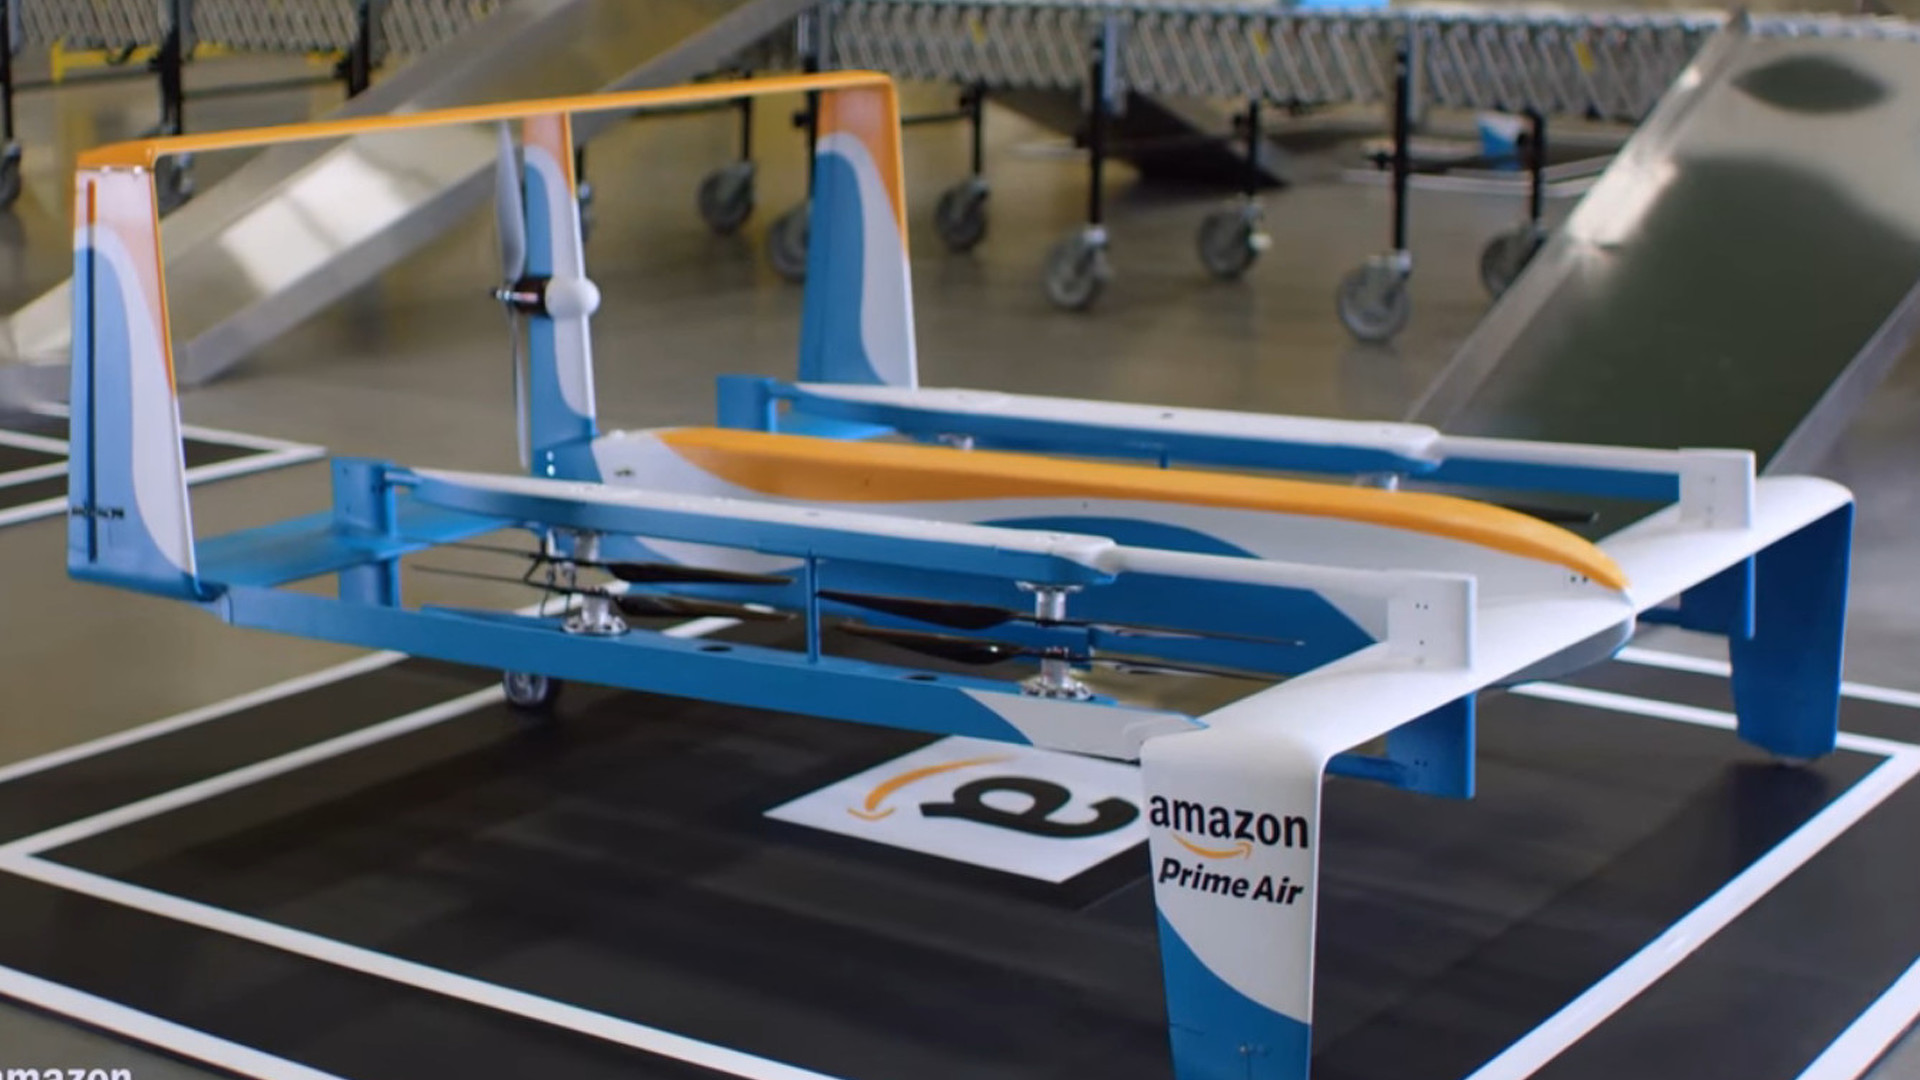 Jeremy Clarkson returns in a new spot for Amazon Prime Air